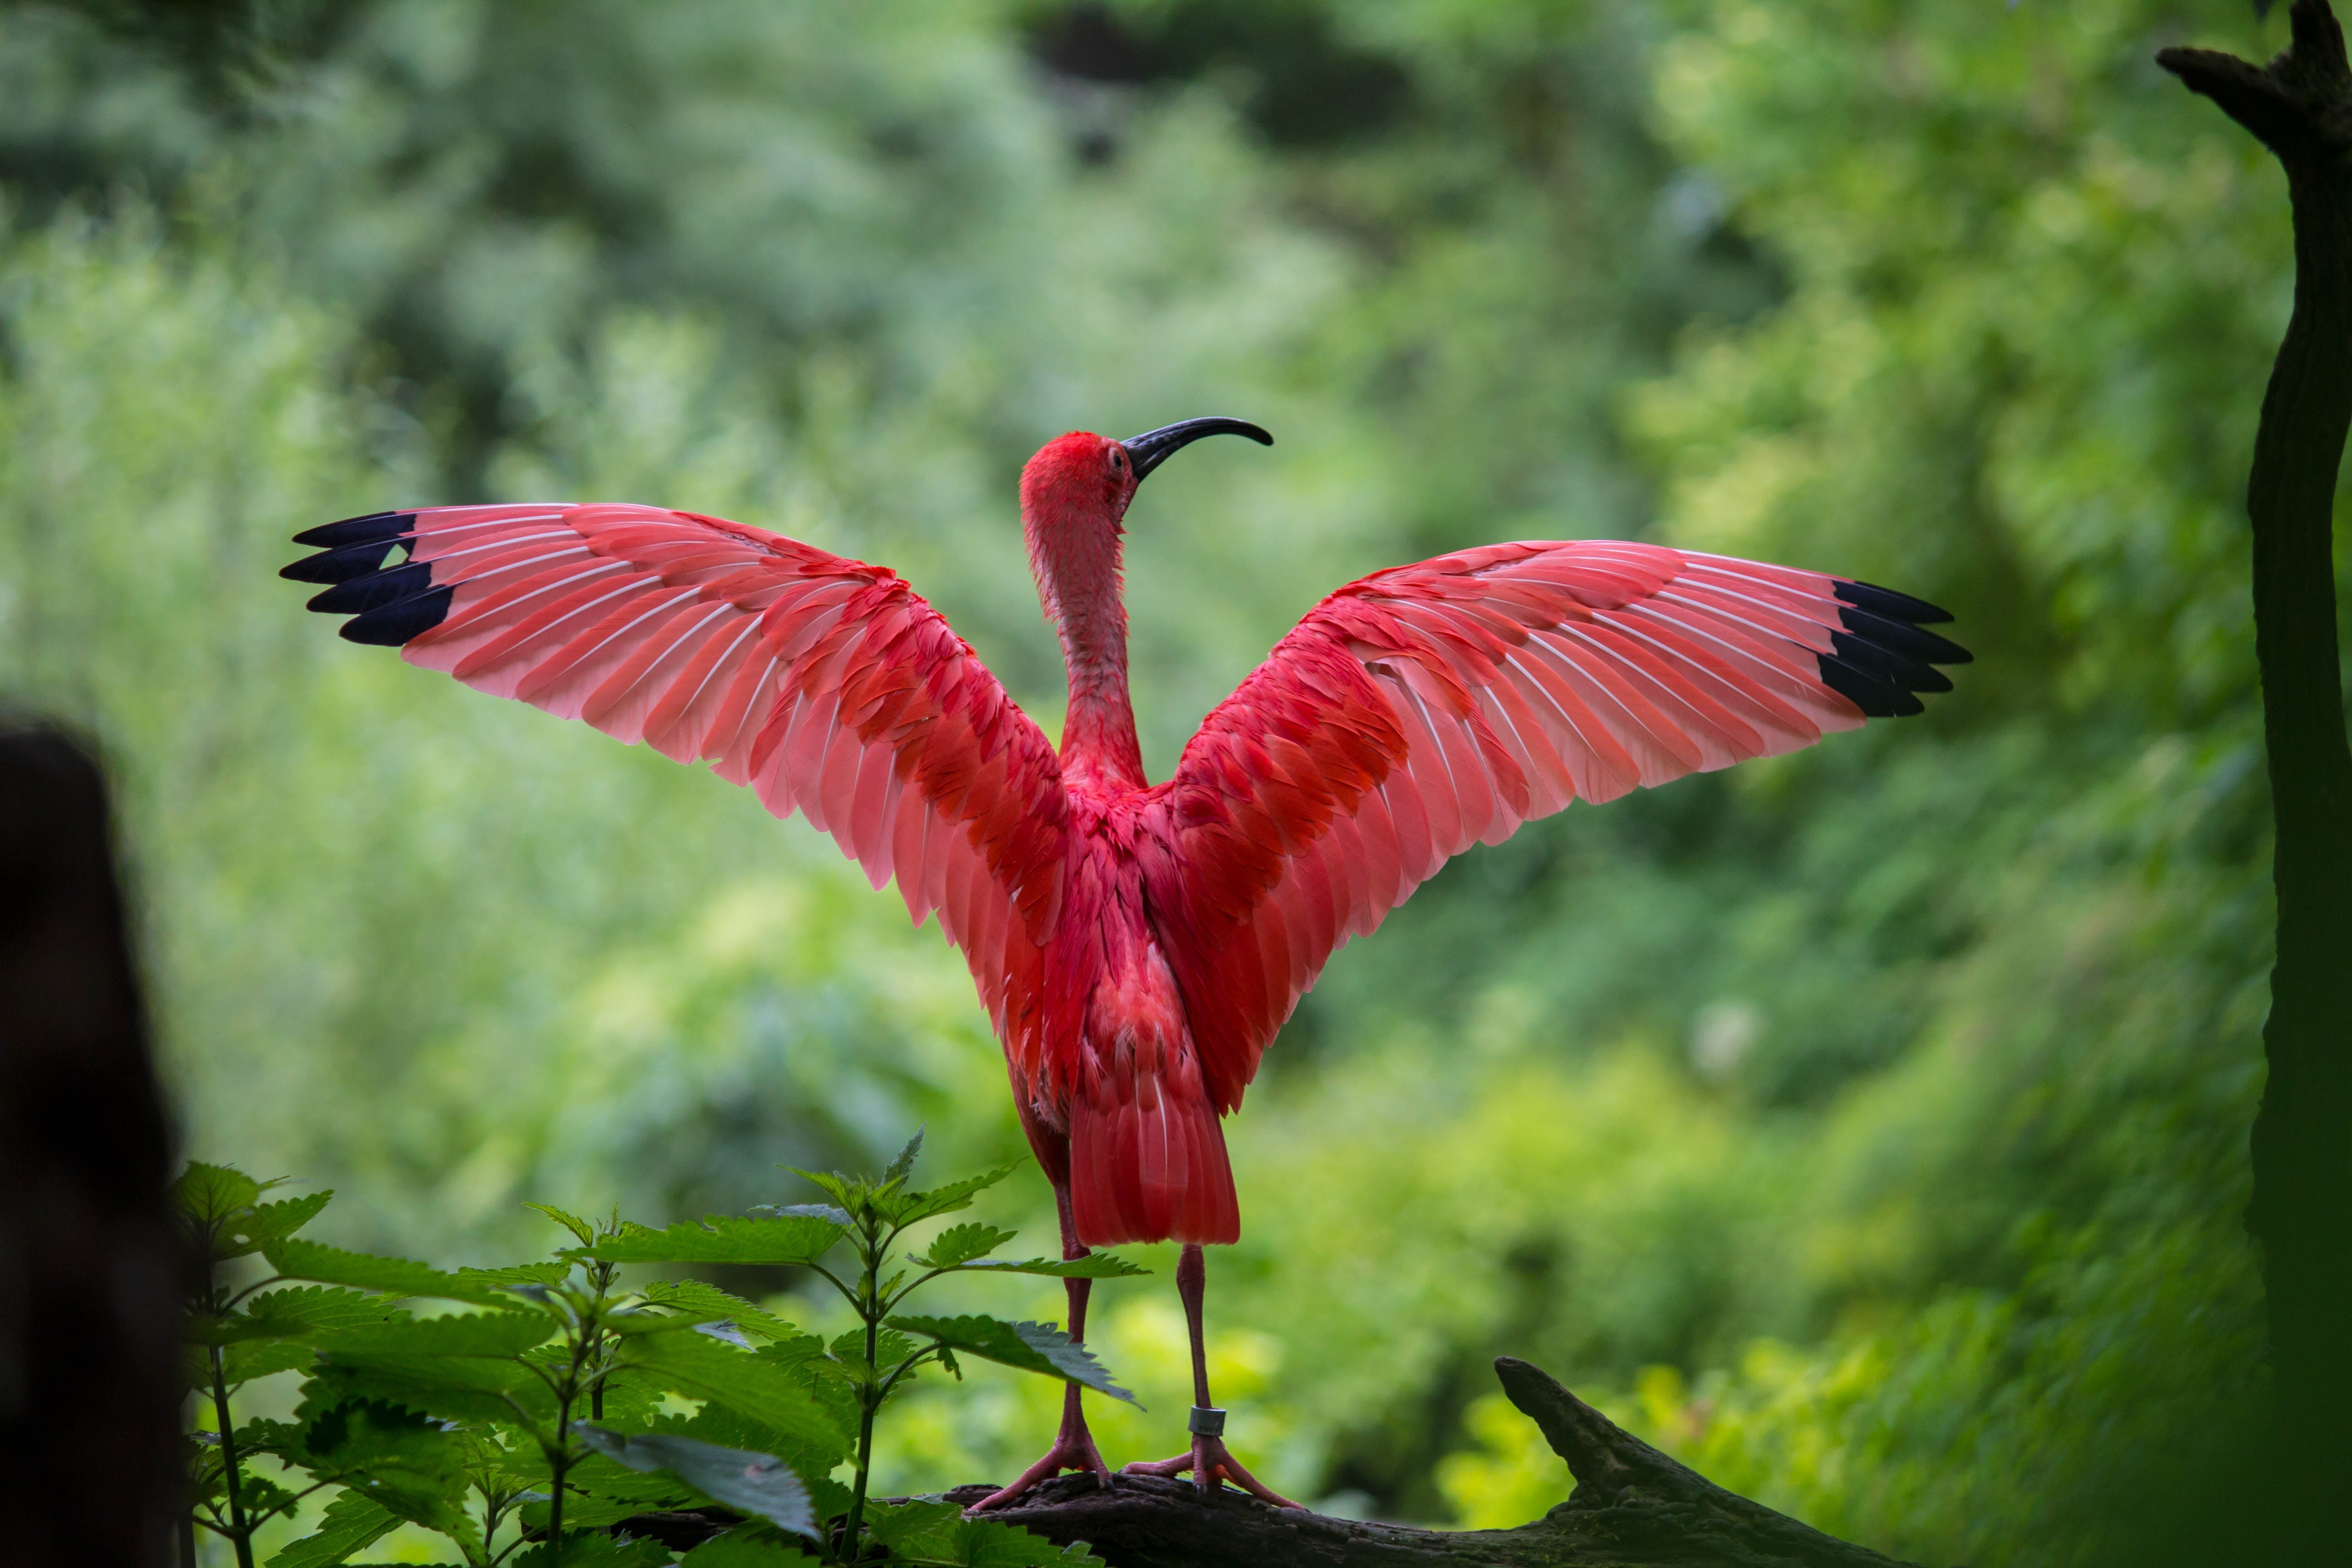 Flamingo Spreading Its Wings